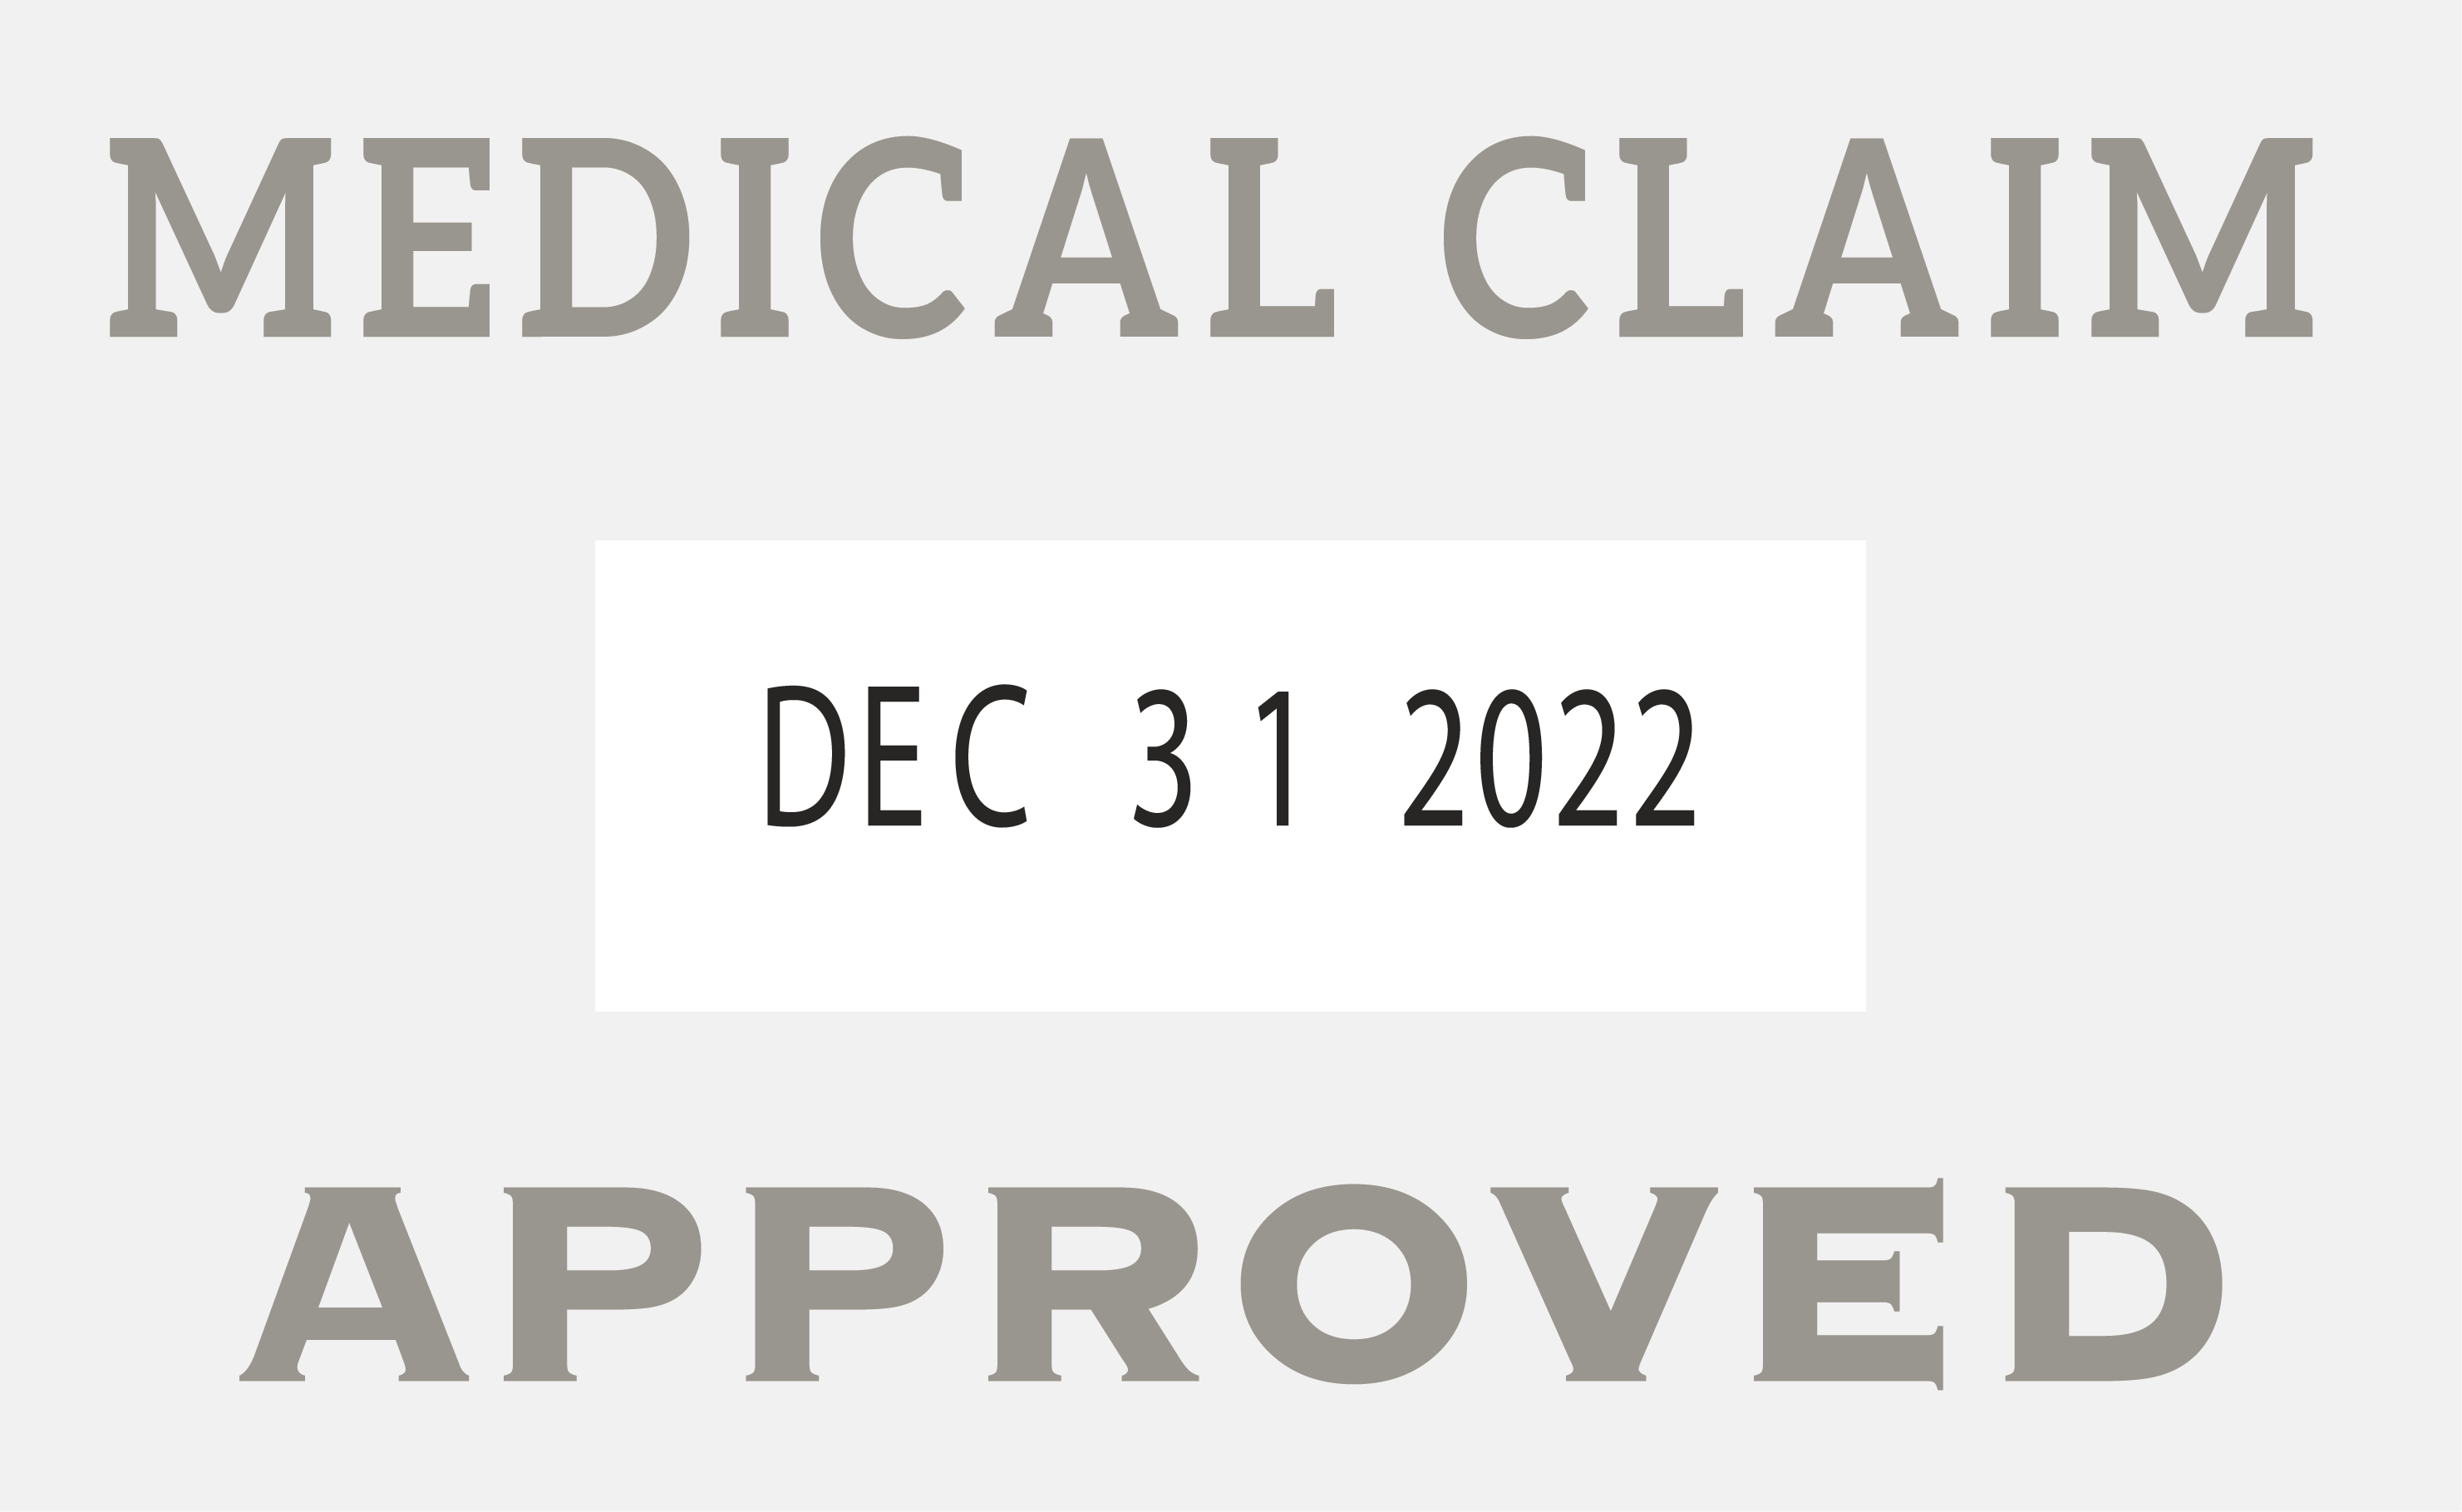 Medical Approved Medical Claim Stamp